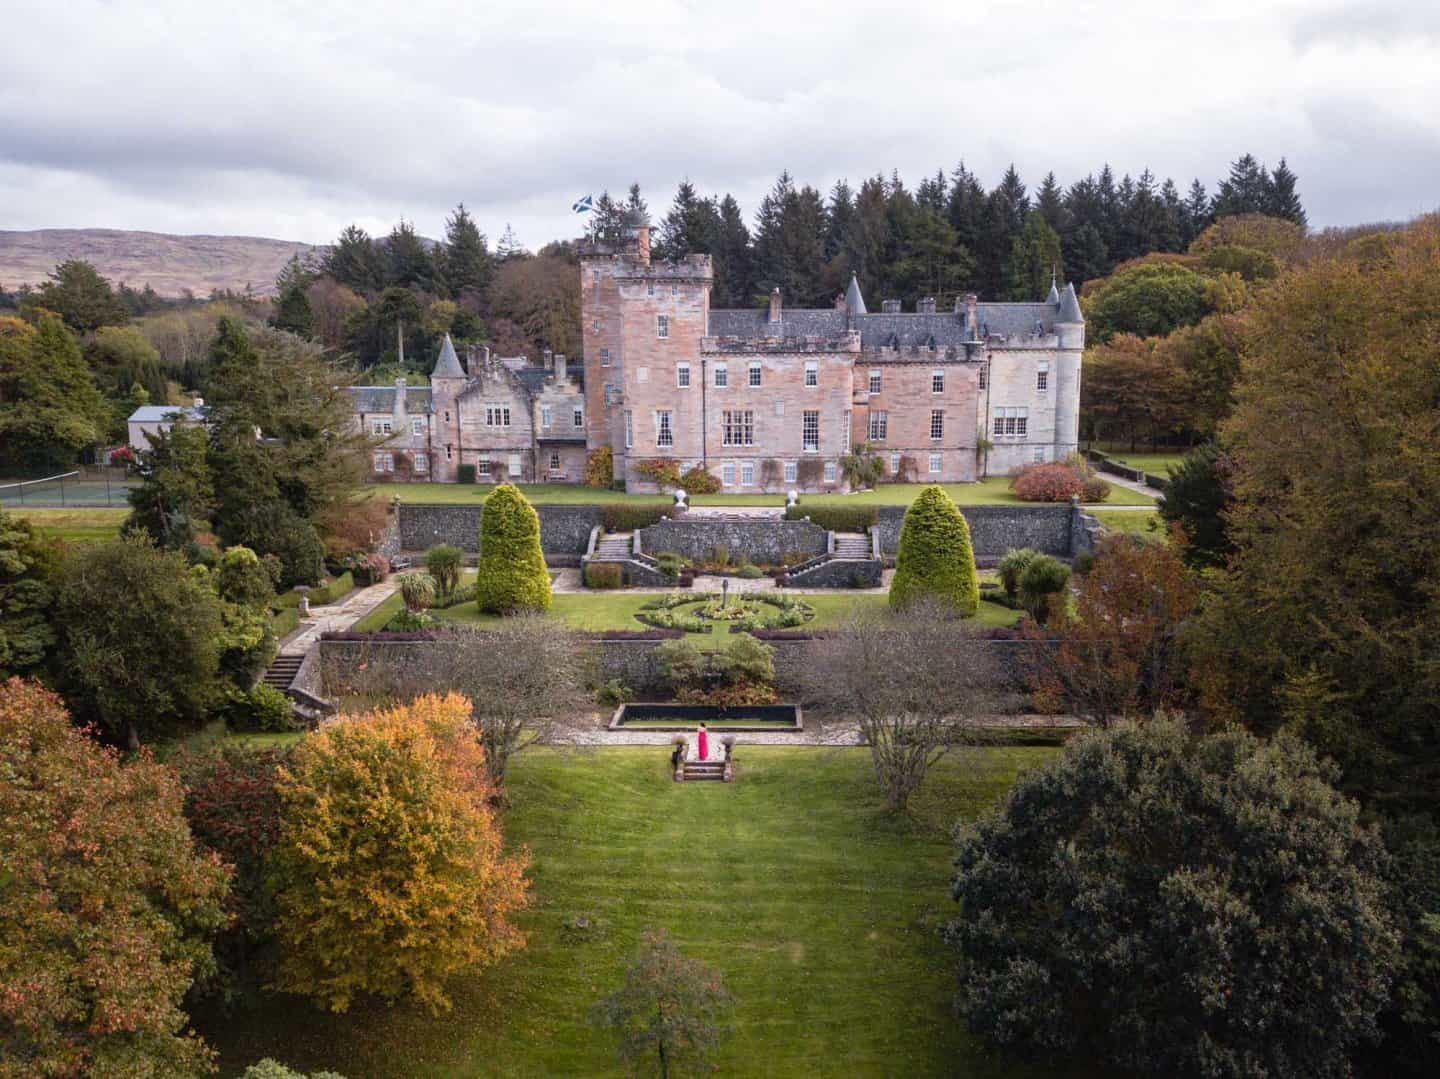 Drone photo of Glenapp Castle and its grounds